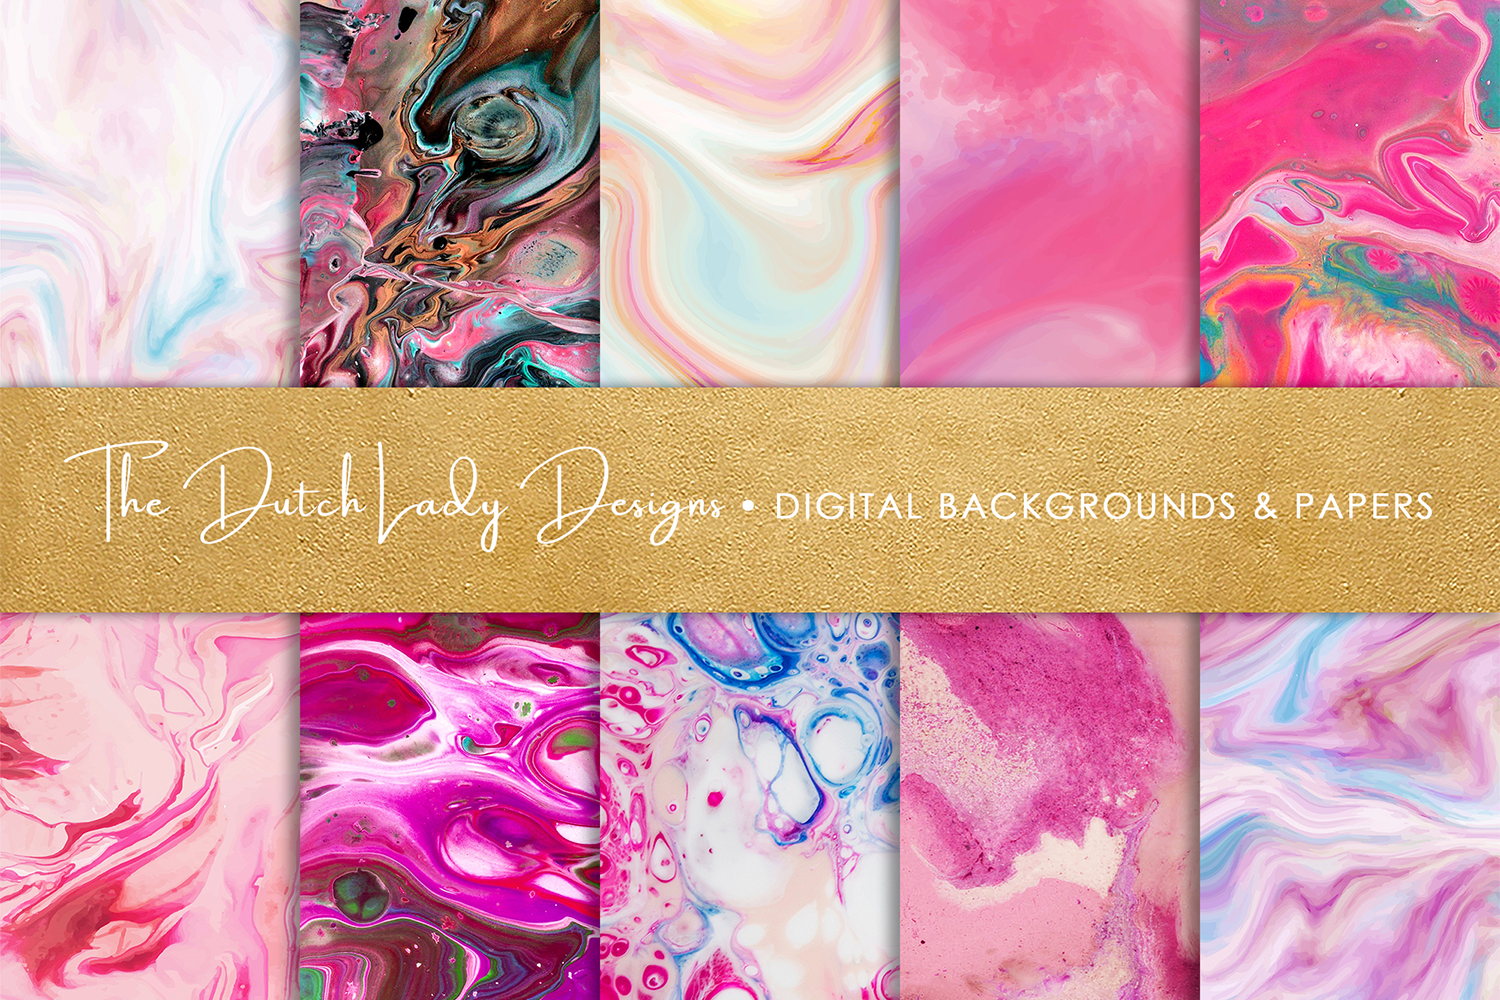 image regarding Printable Backgrounds named Purple Marble Swirls - Electronic Backgrounds - Printable Sbook Papers - .JPEG Documents